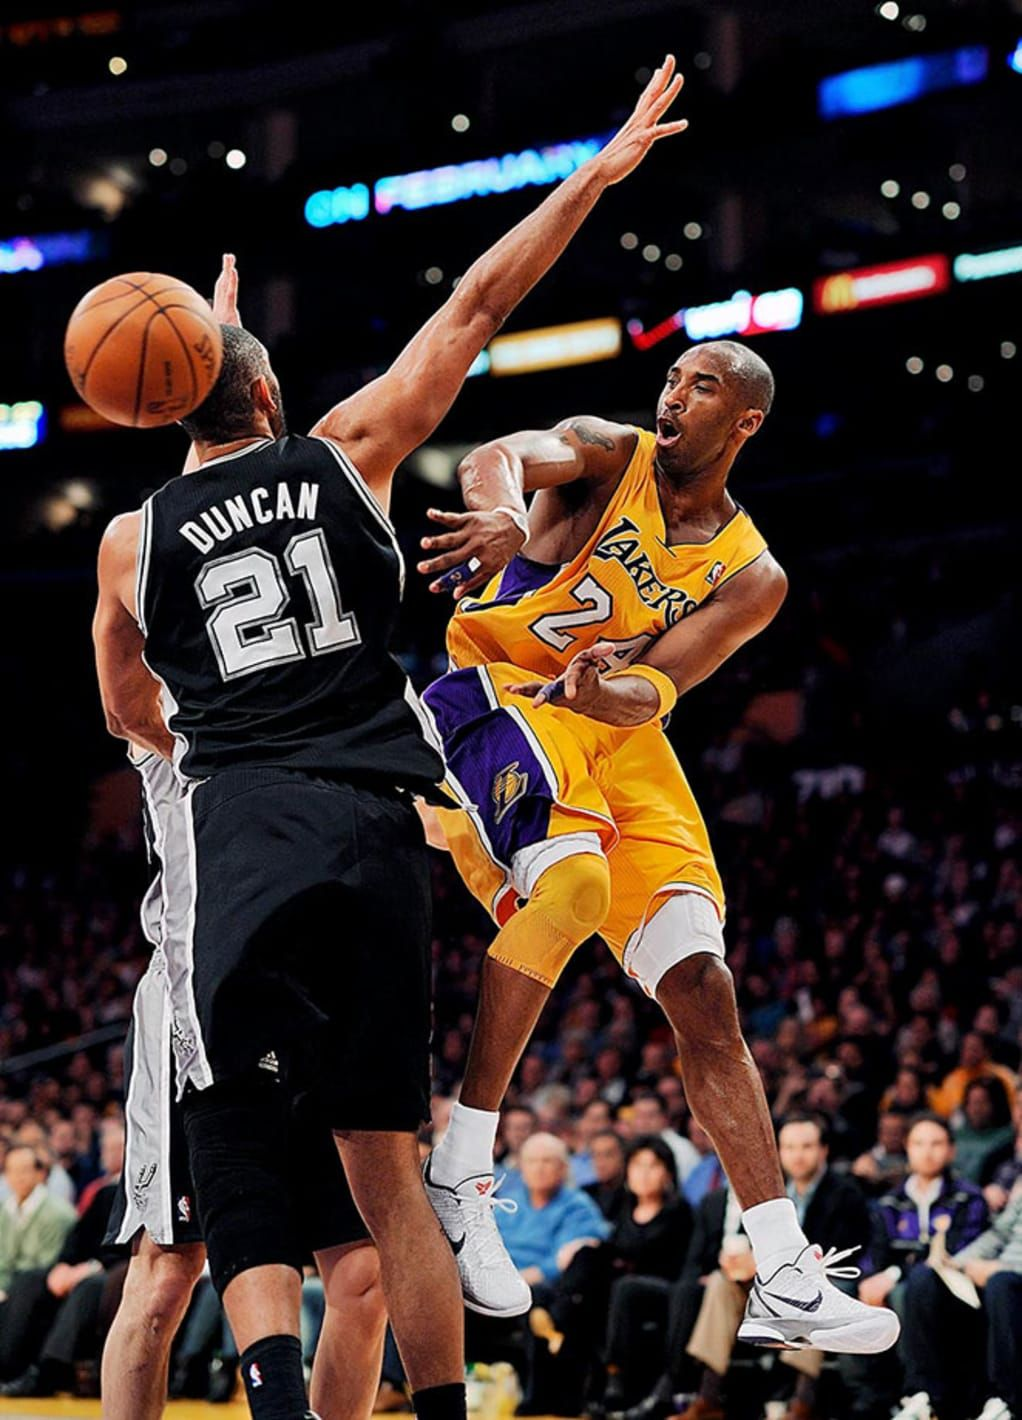 100 Best Kobe Bryant Photos in 2020 (With images) Kobe